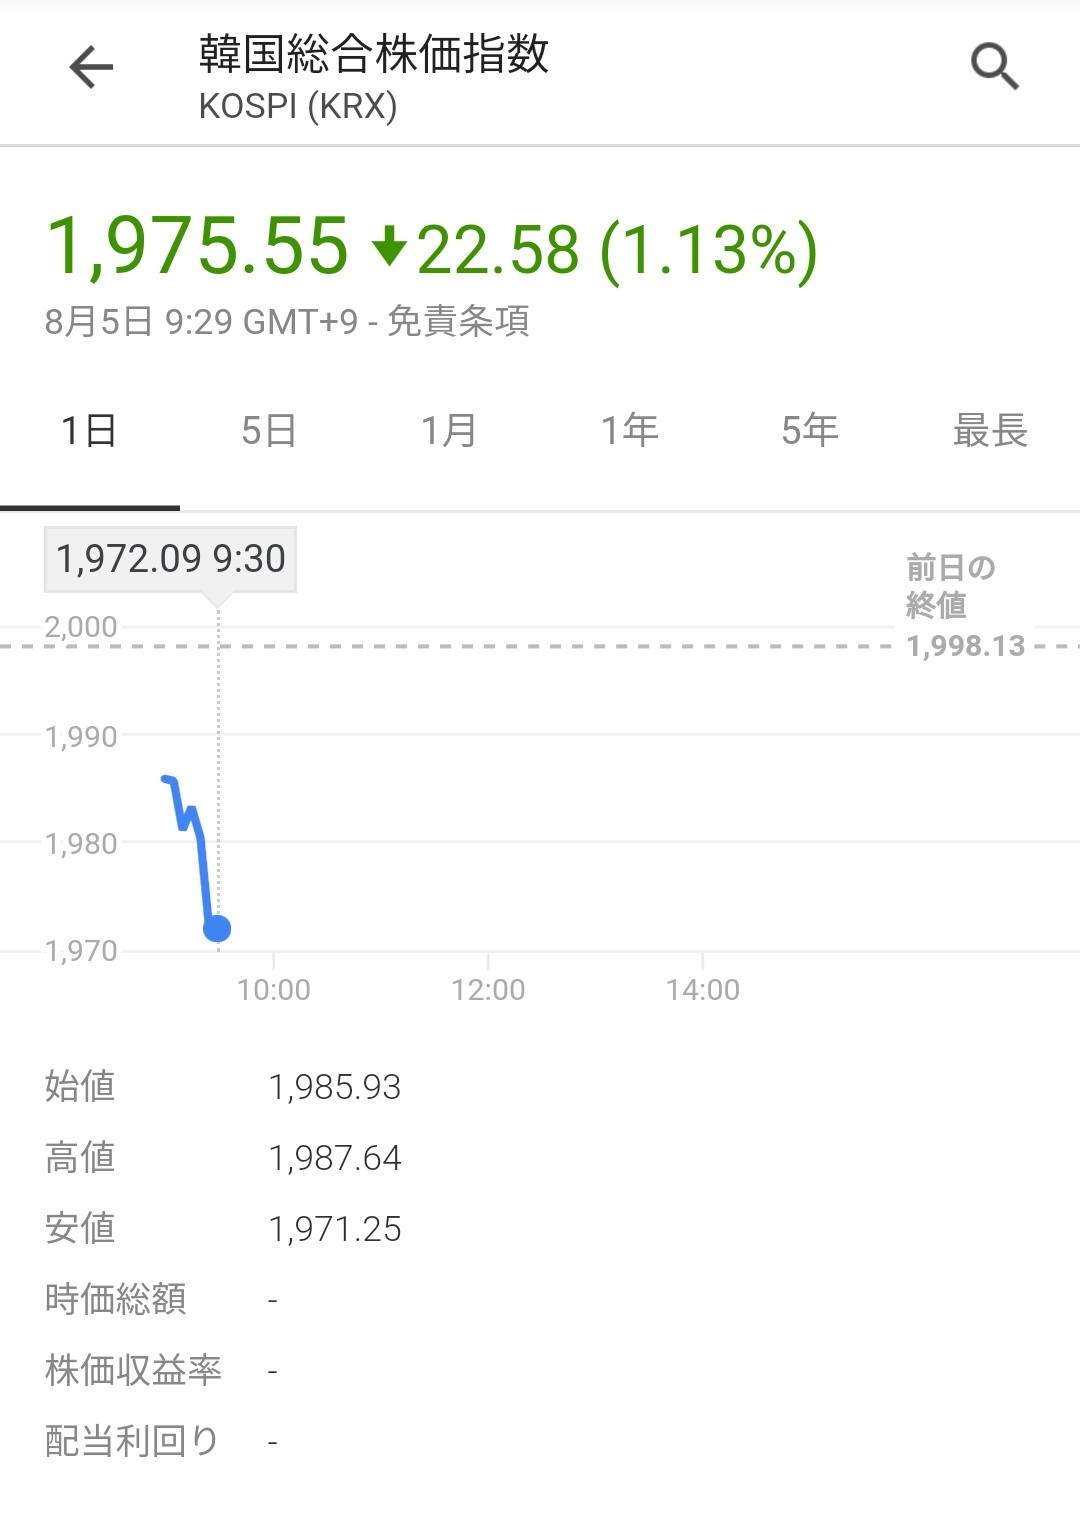 [Pickup] [urgent] South Koreas stock price crashed in just 30 minutes